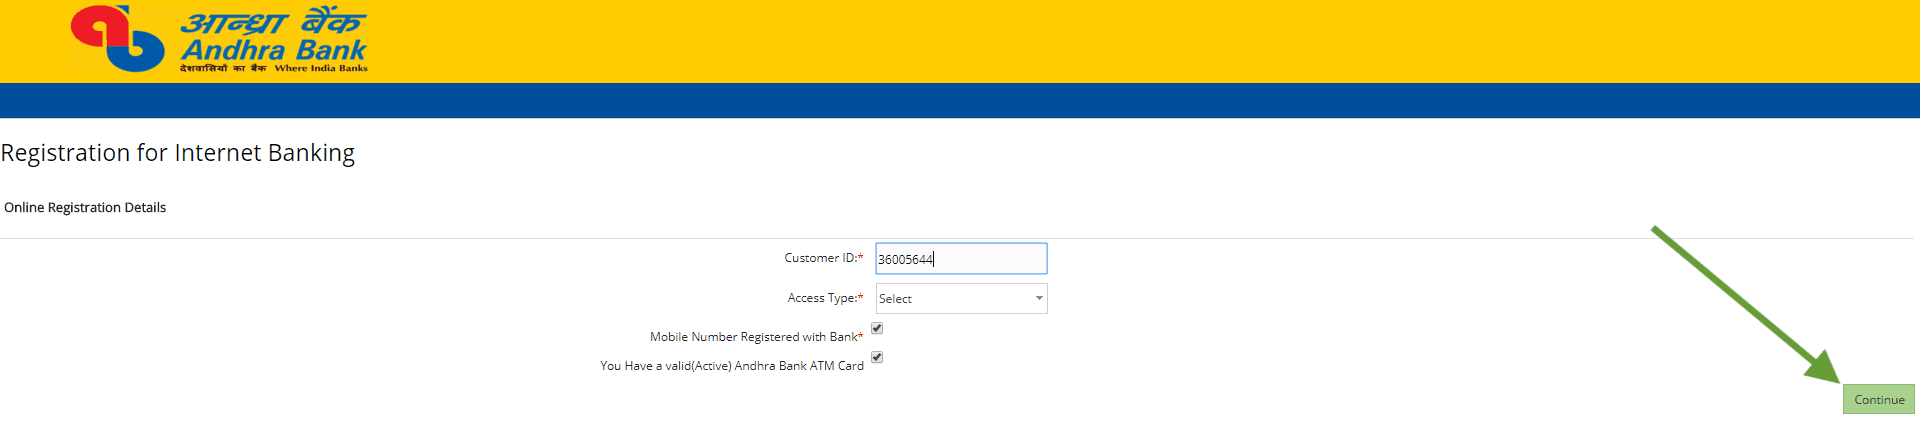 online registration details Andhra bank net banking